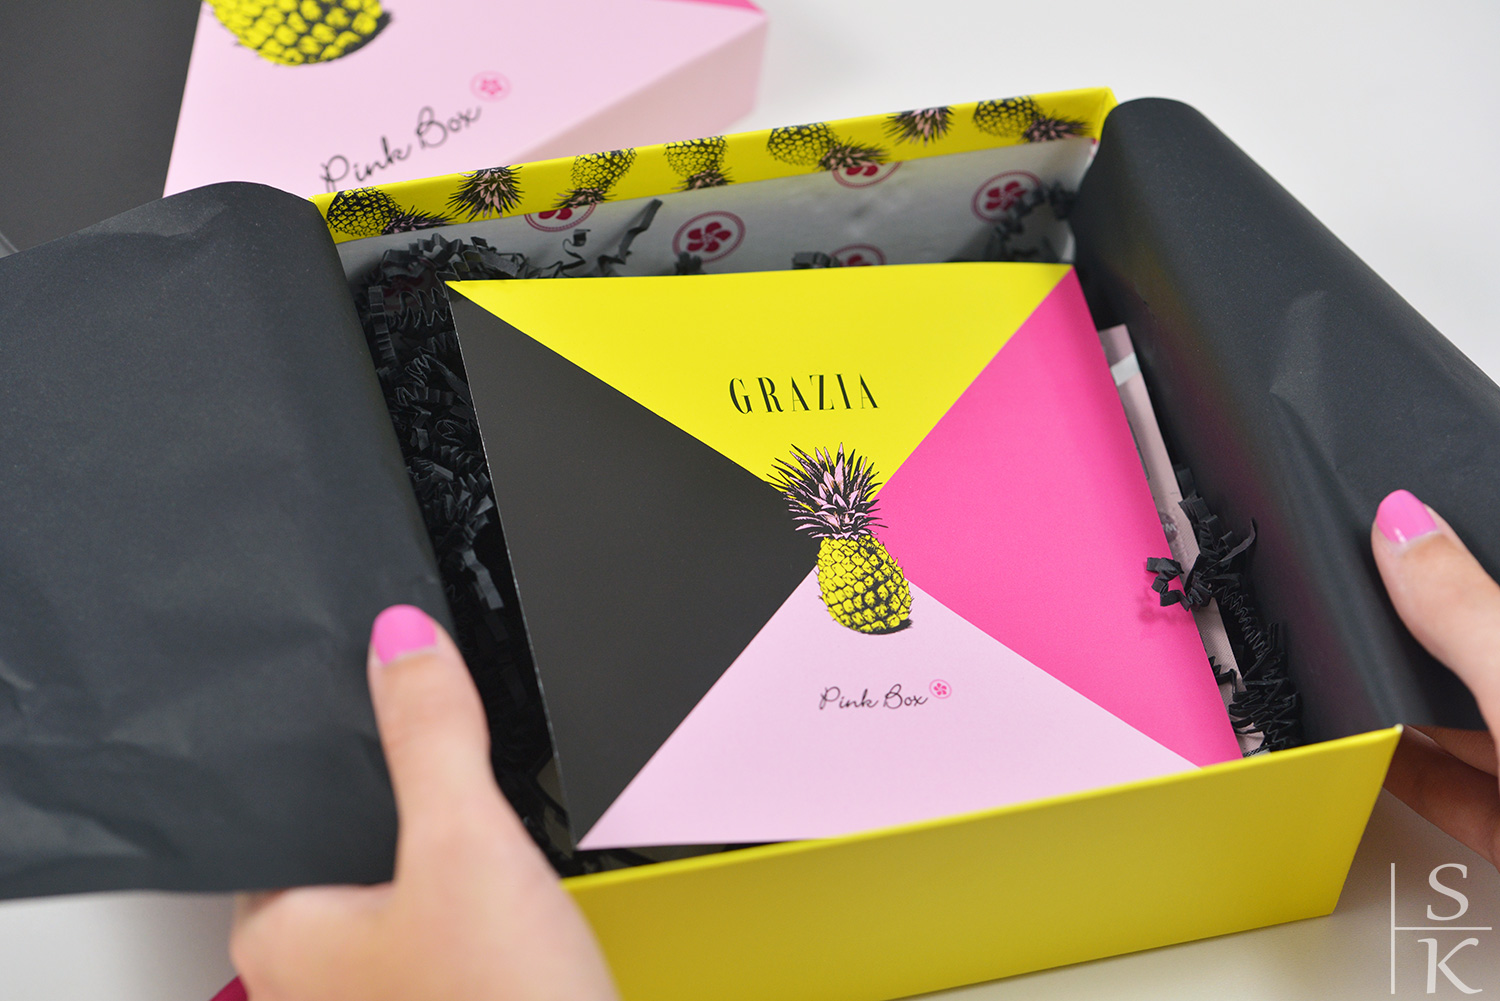 Grazia for Pink Box Juli 2017 @Saskia-Katharina Most, Horizont-Blog